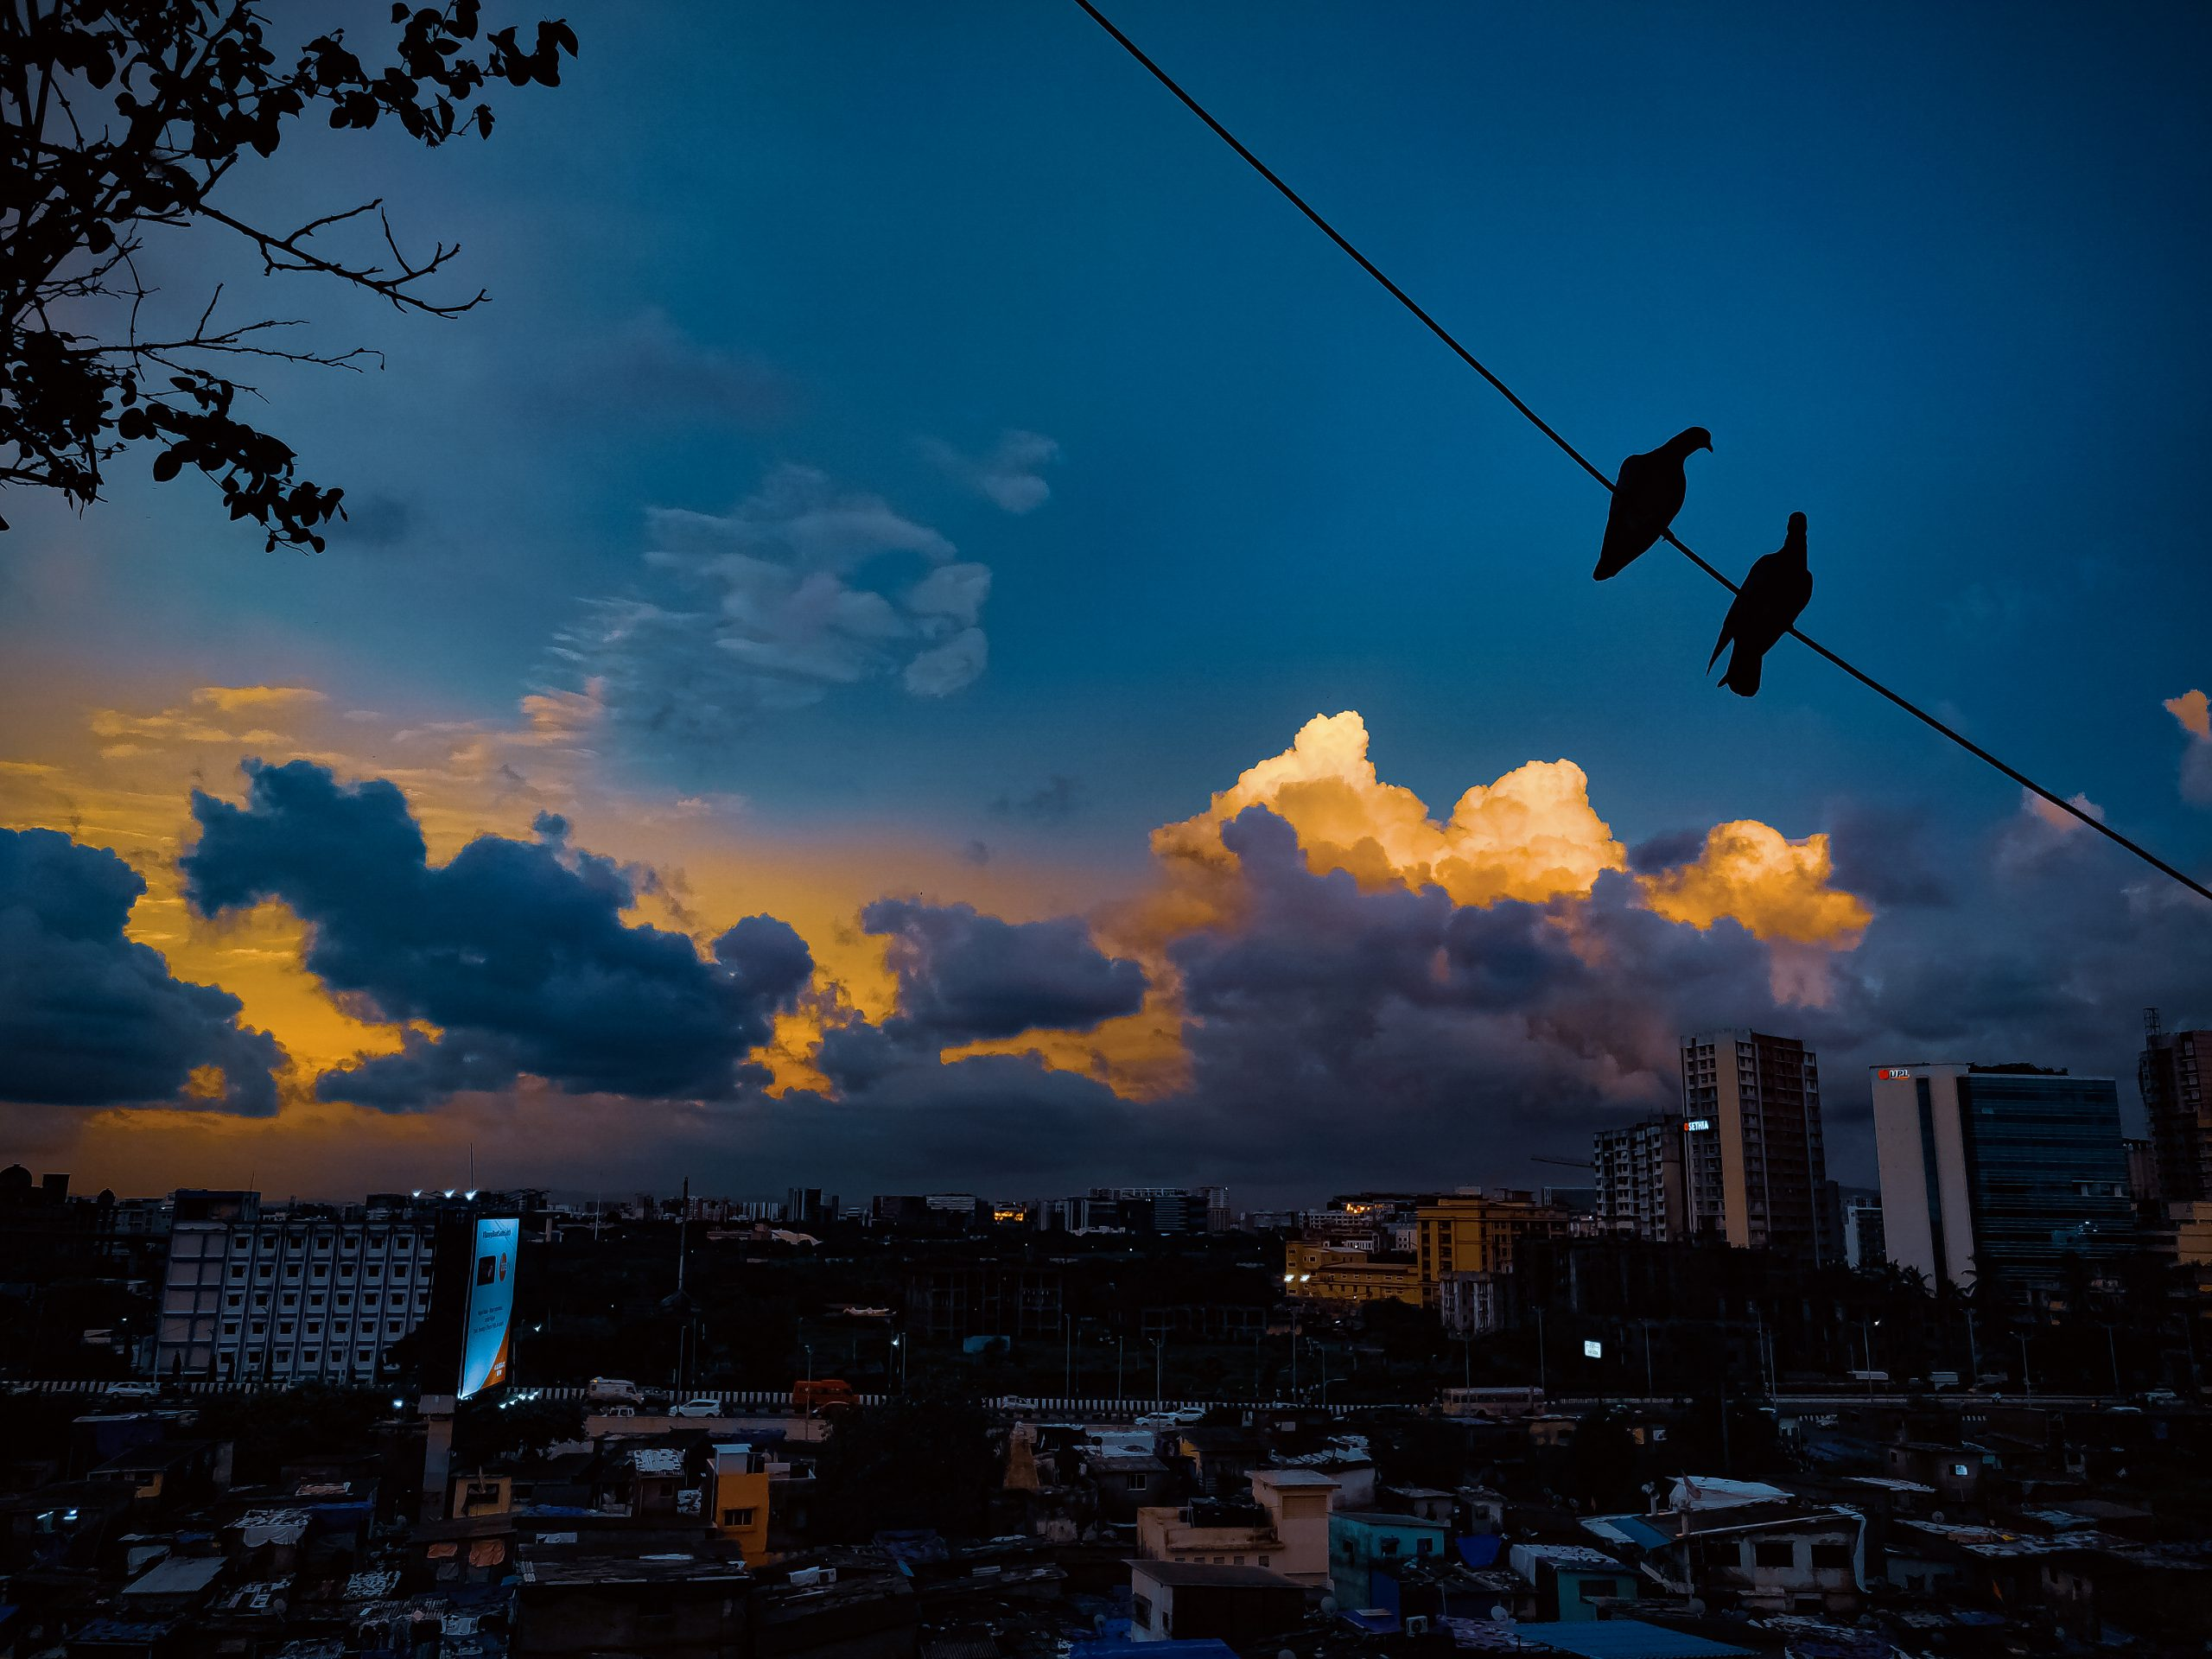 Two Birds Hanging on a Wire at Dusk Scenery